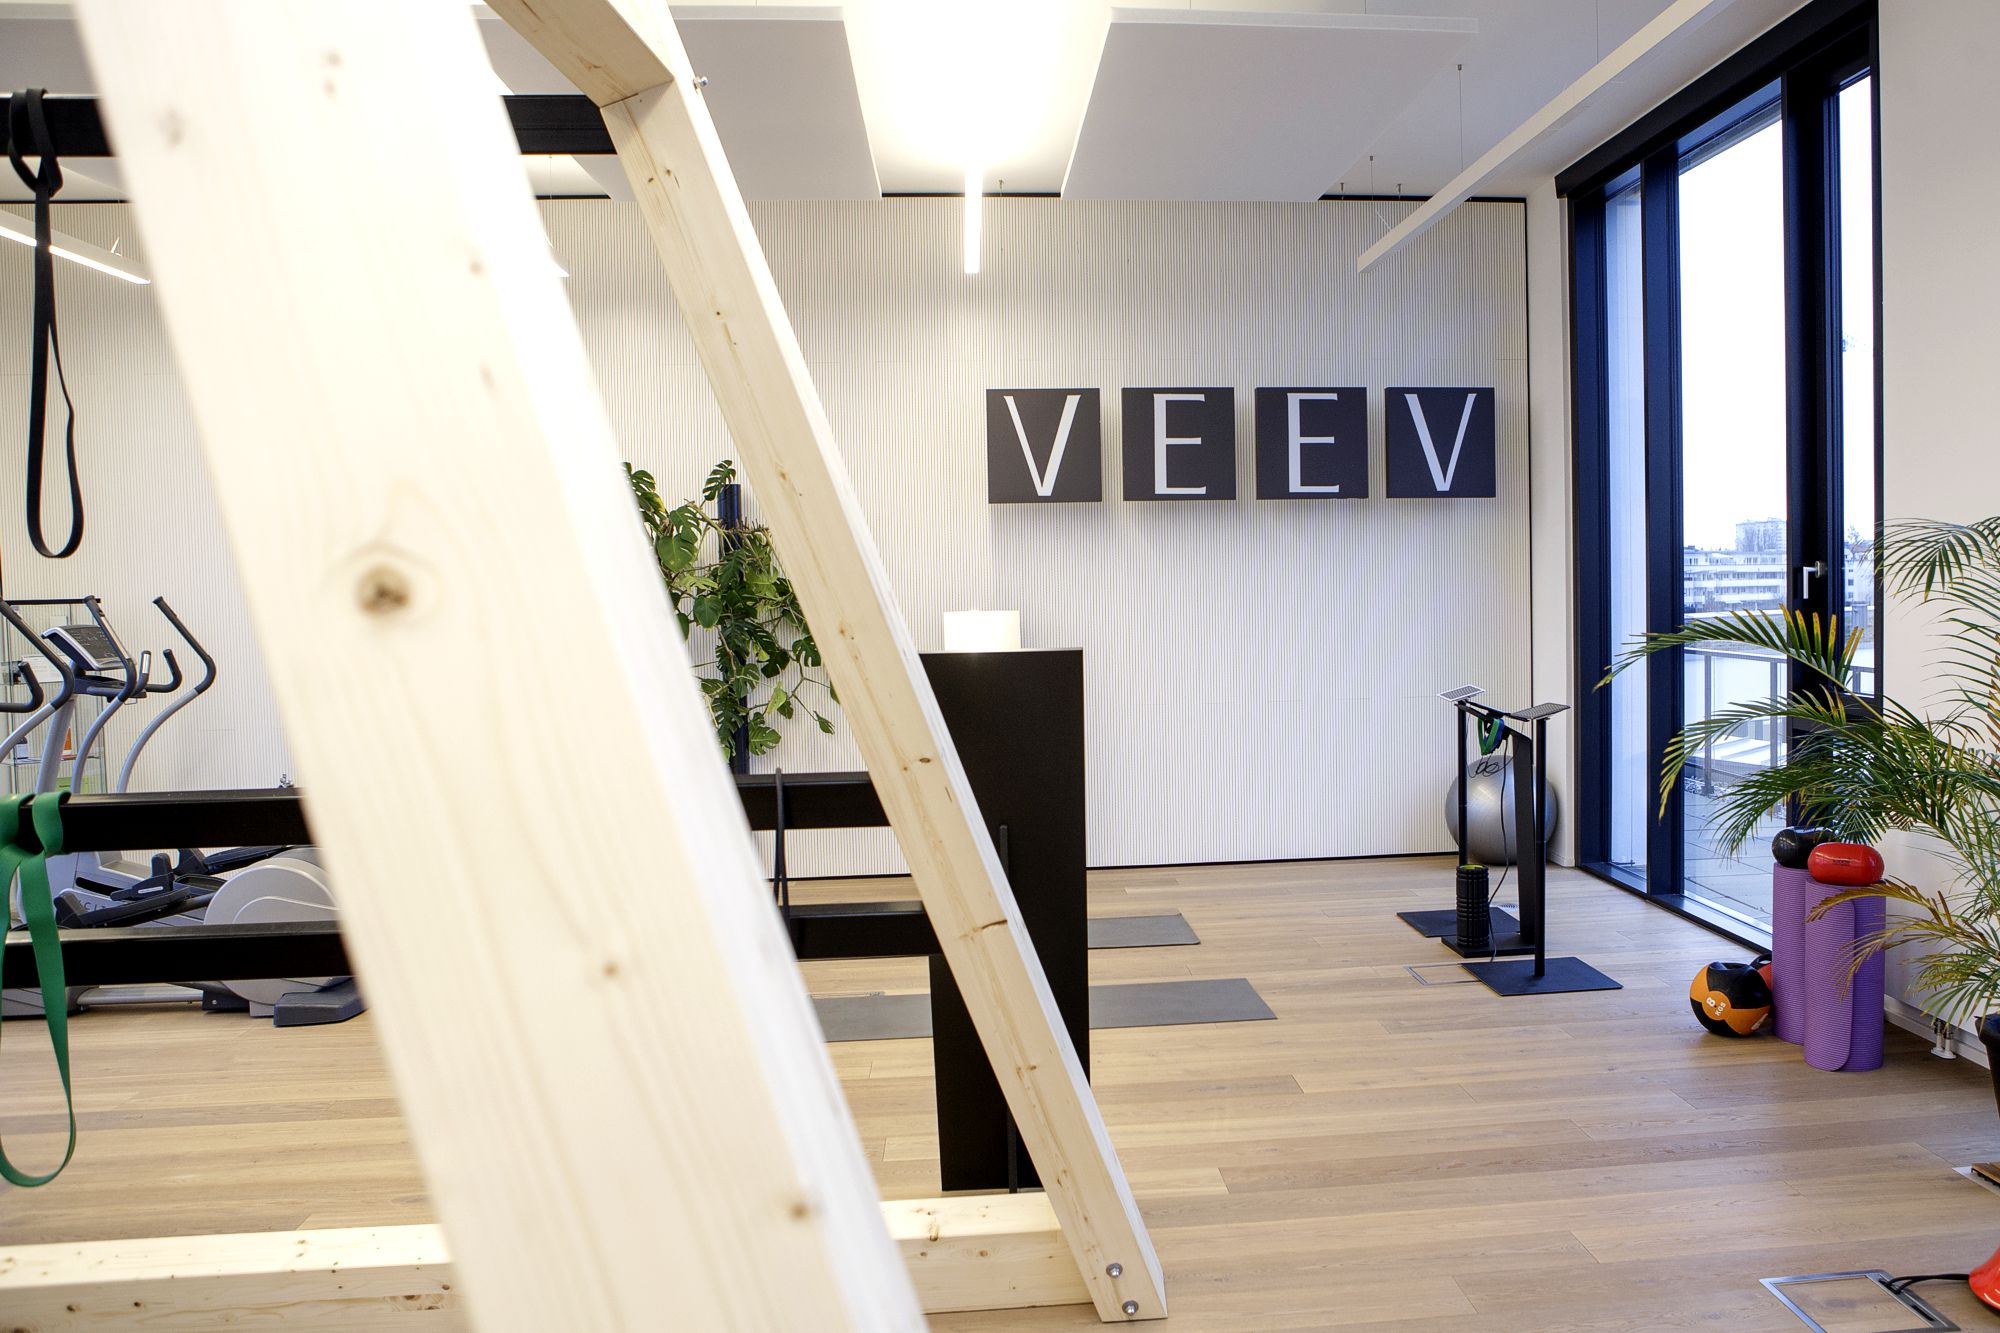 Hier findest Du Dein VEEV Health and Fitness Institut.